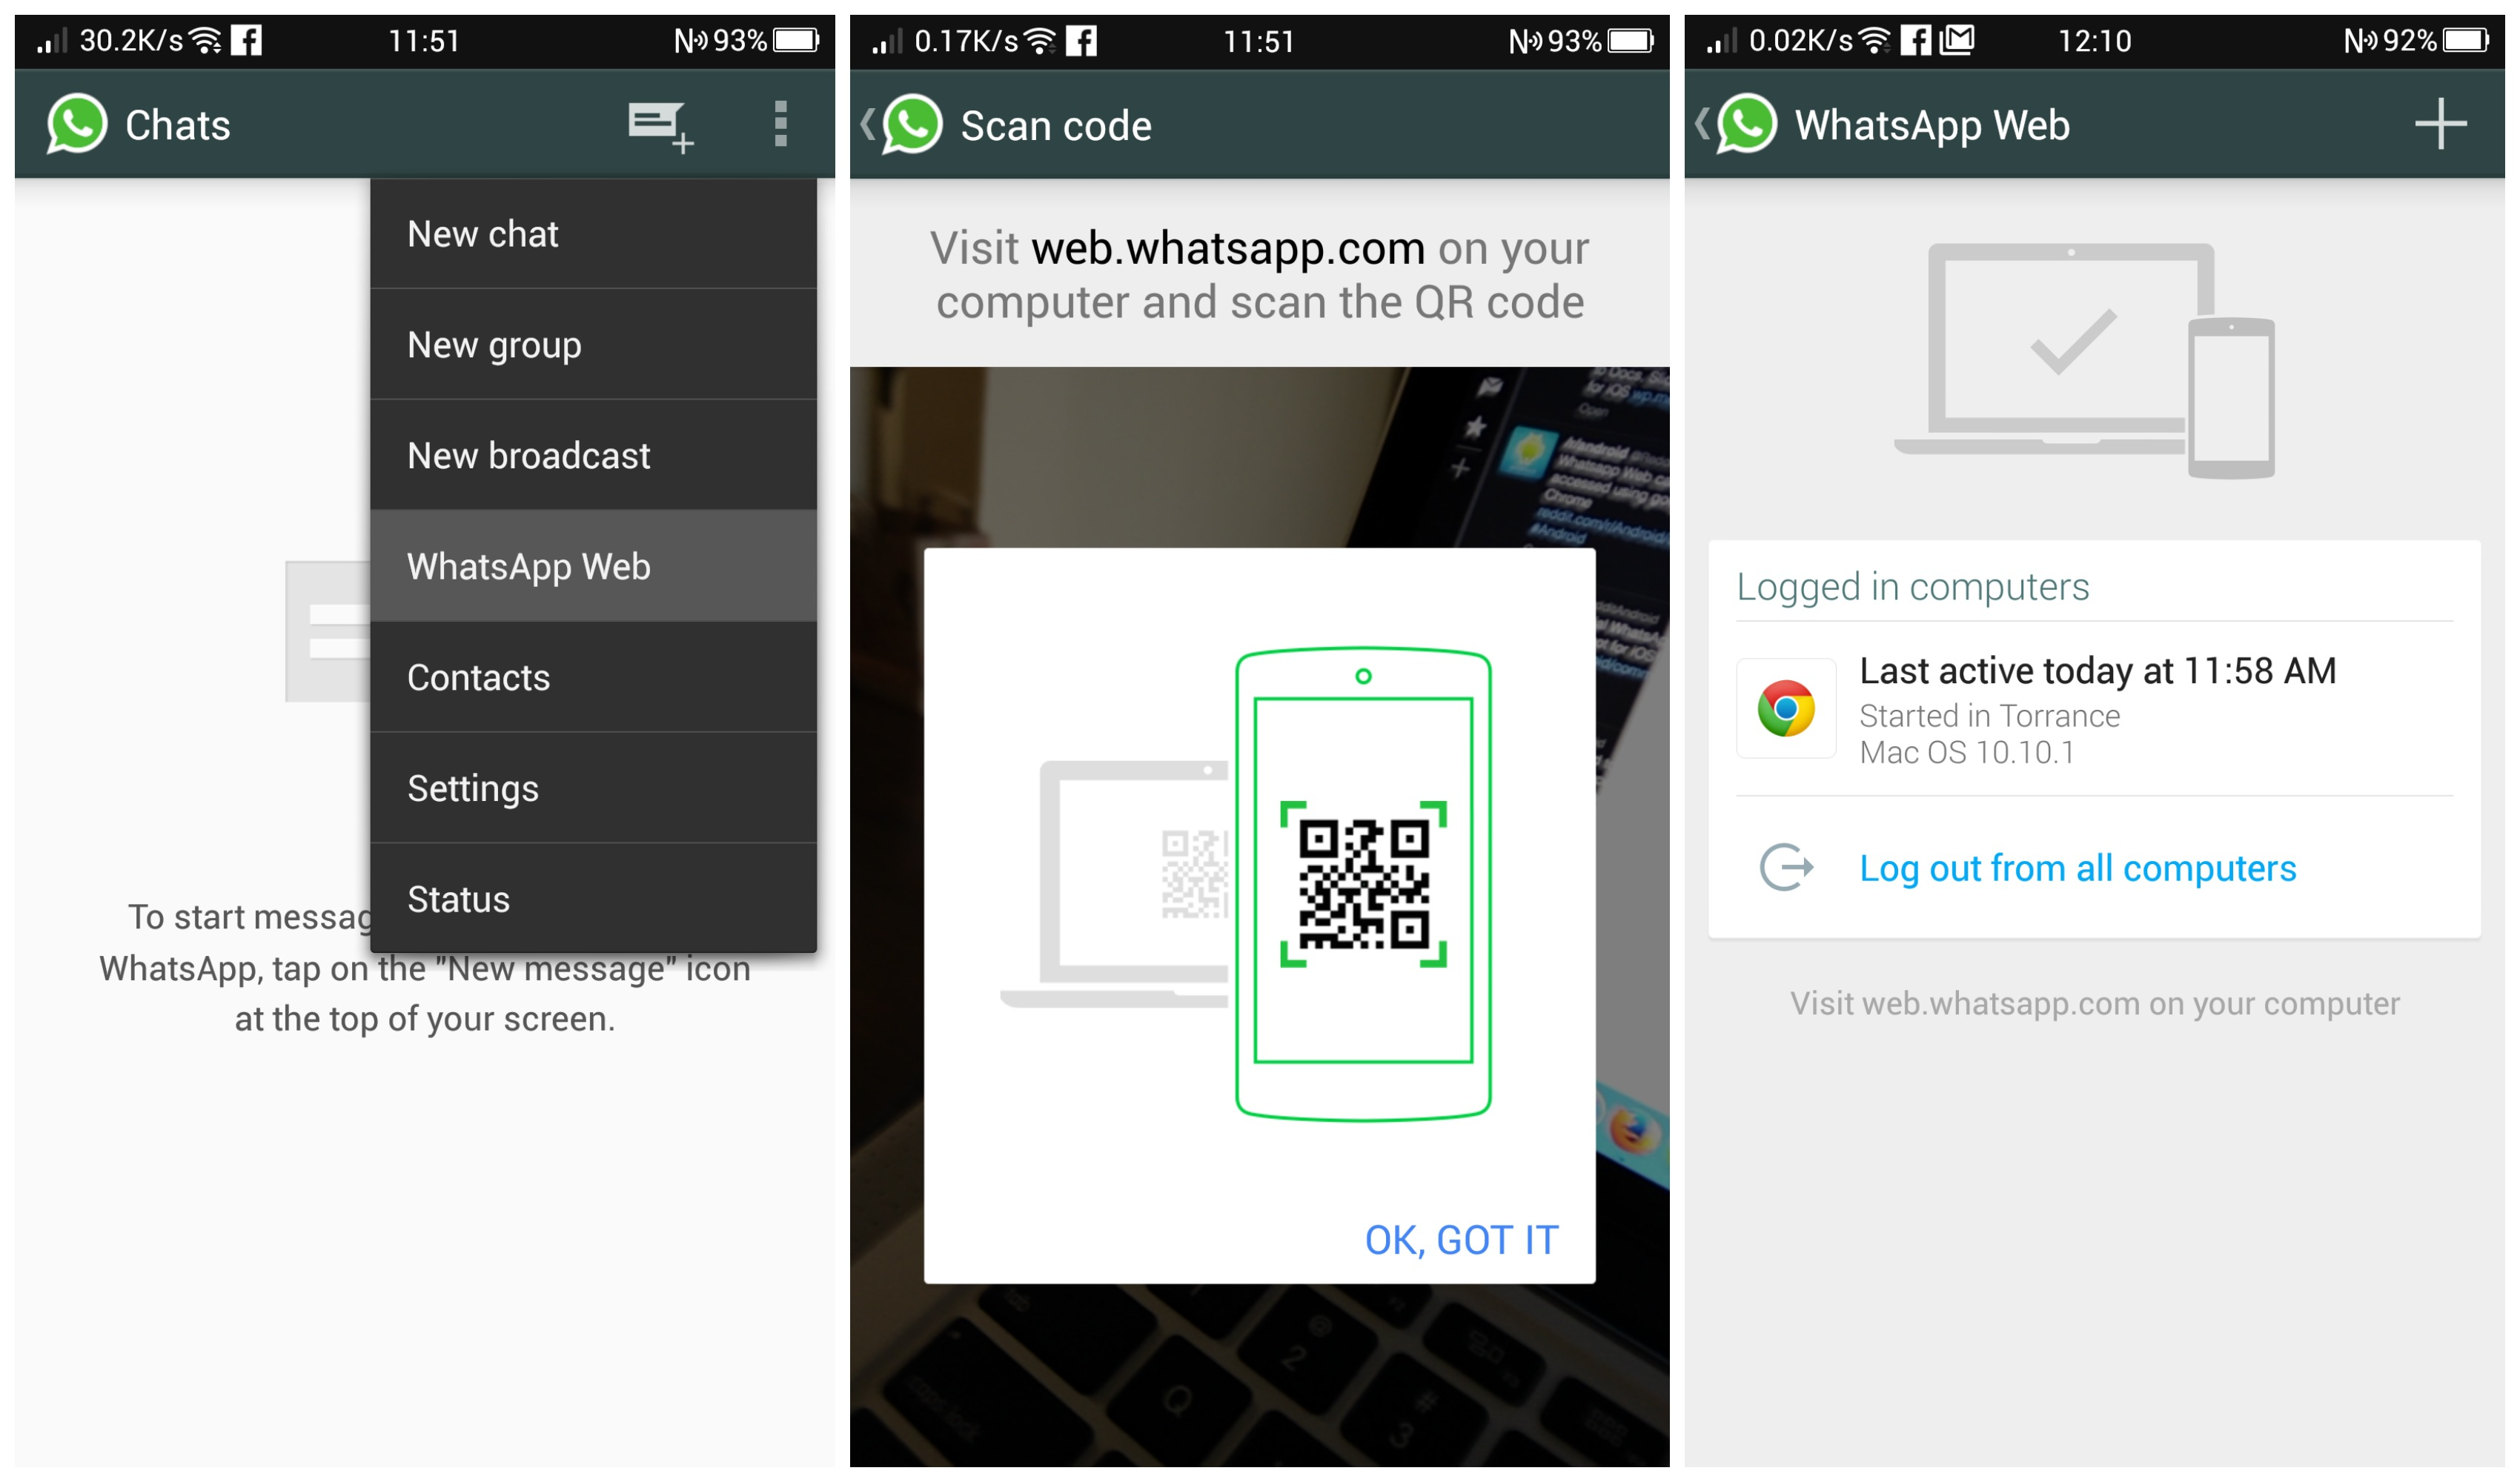 WhatsApp is now accessible from the web for Android users